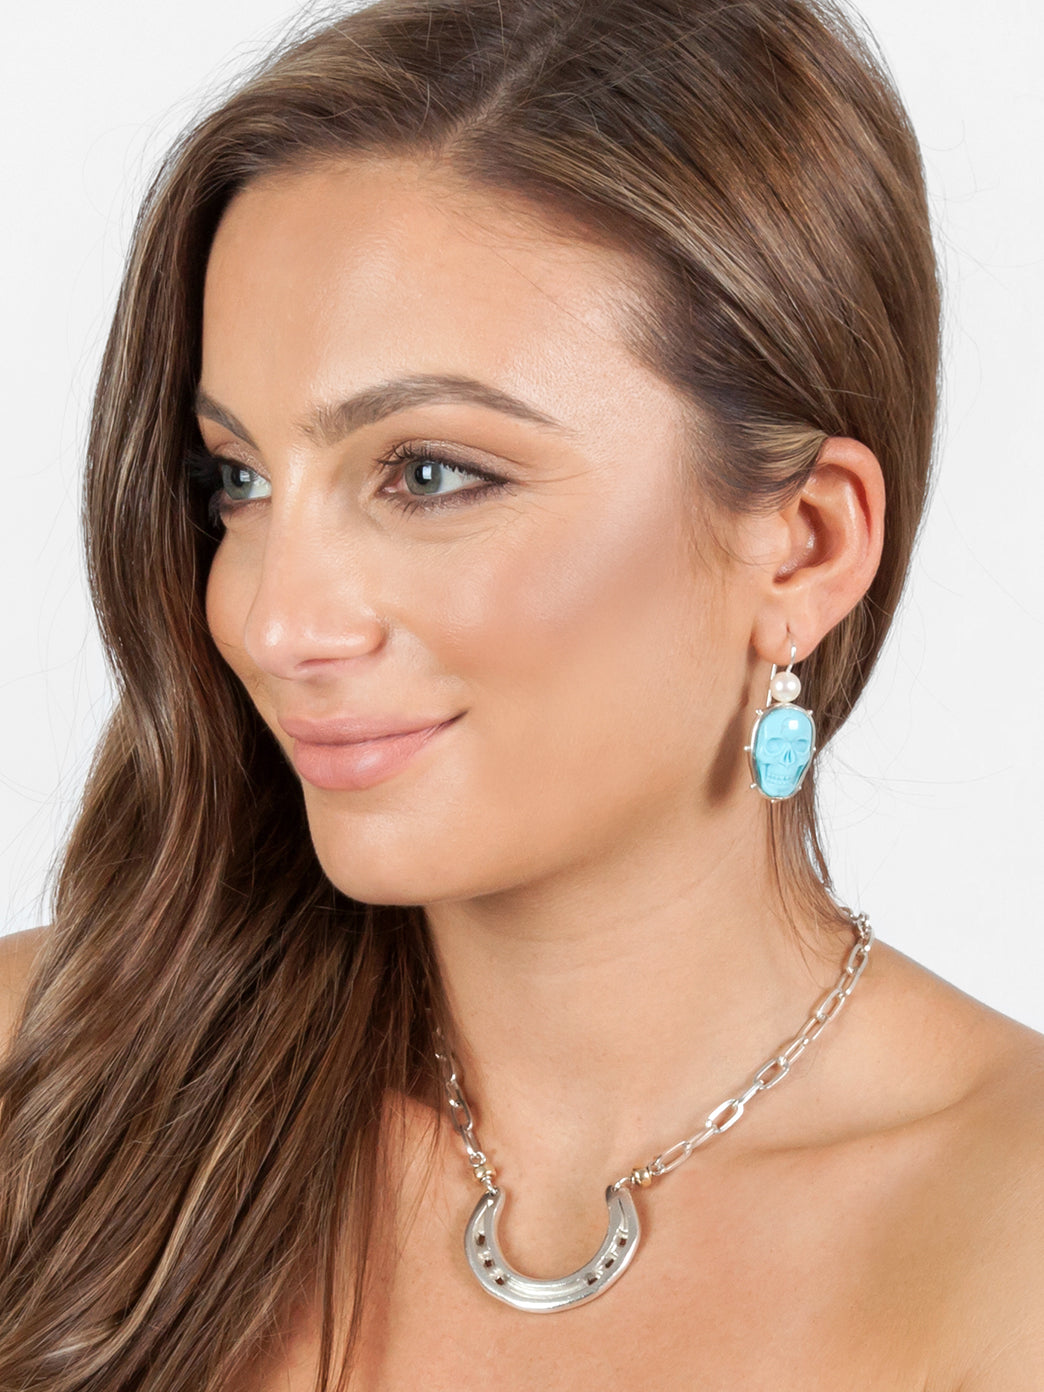 Fiorina Jewellery Turquoise Skull Earrings